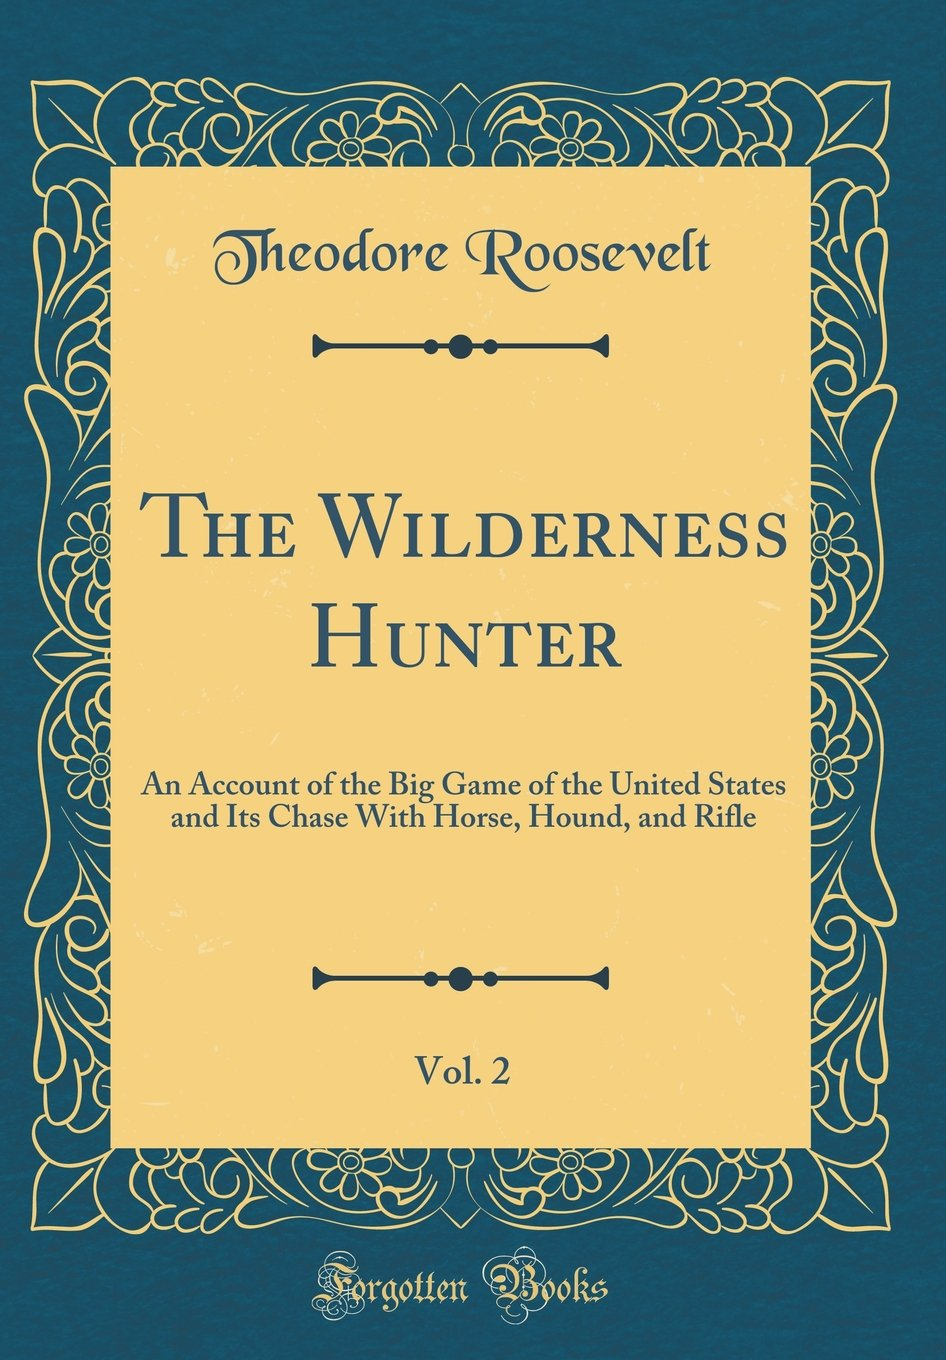 The Wilderness Hunter, Vol. 2: An Account of the Big Game of the United States and Its Chase with Horse, Hound, and Rifle (Classic Reprint) ebook